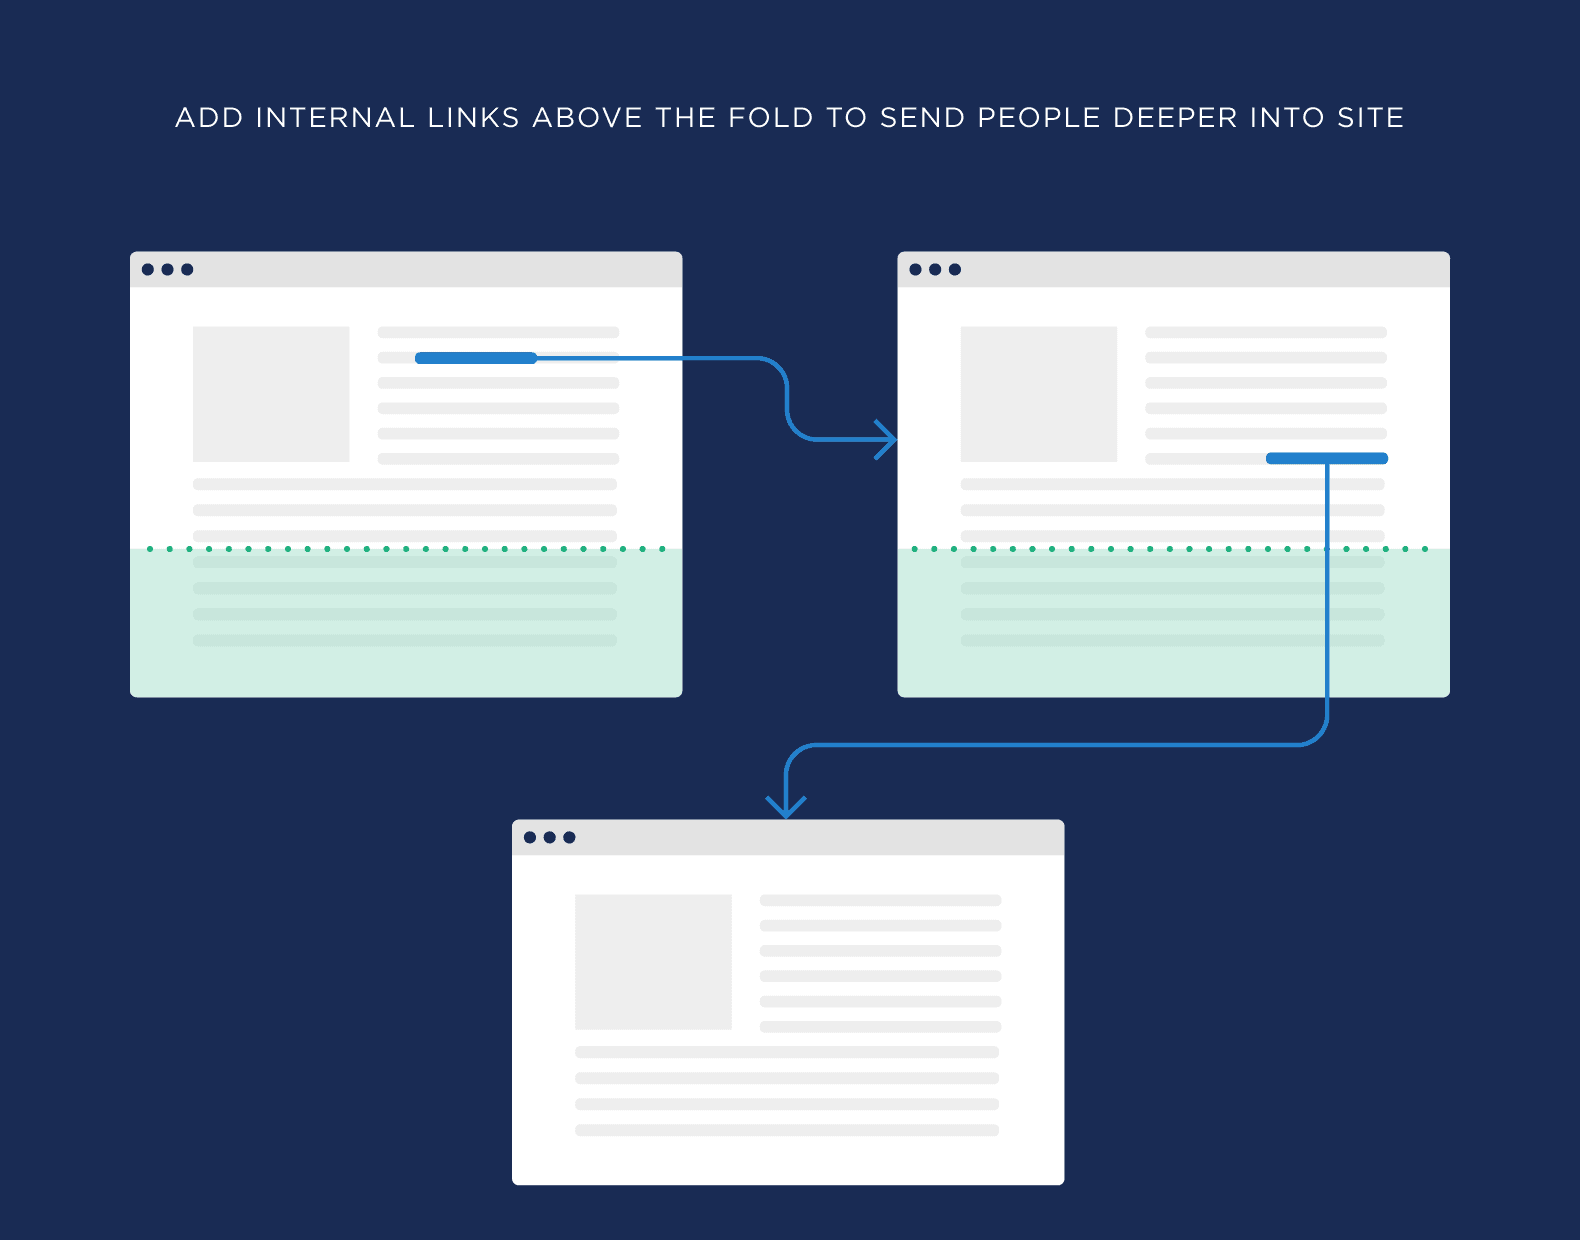 Add internal links above the fold to send people deeper into site